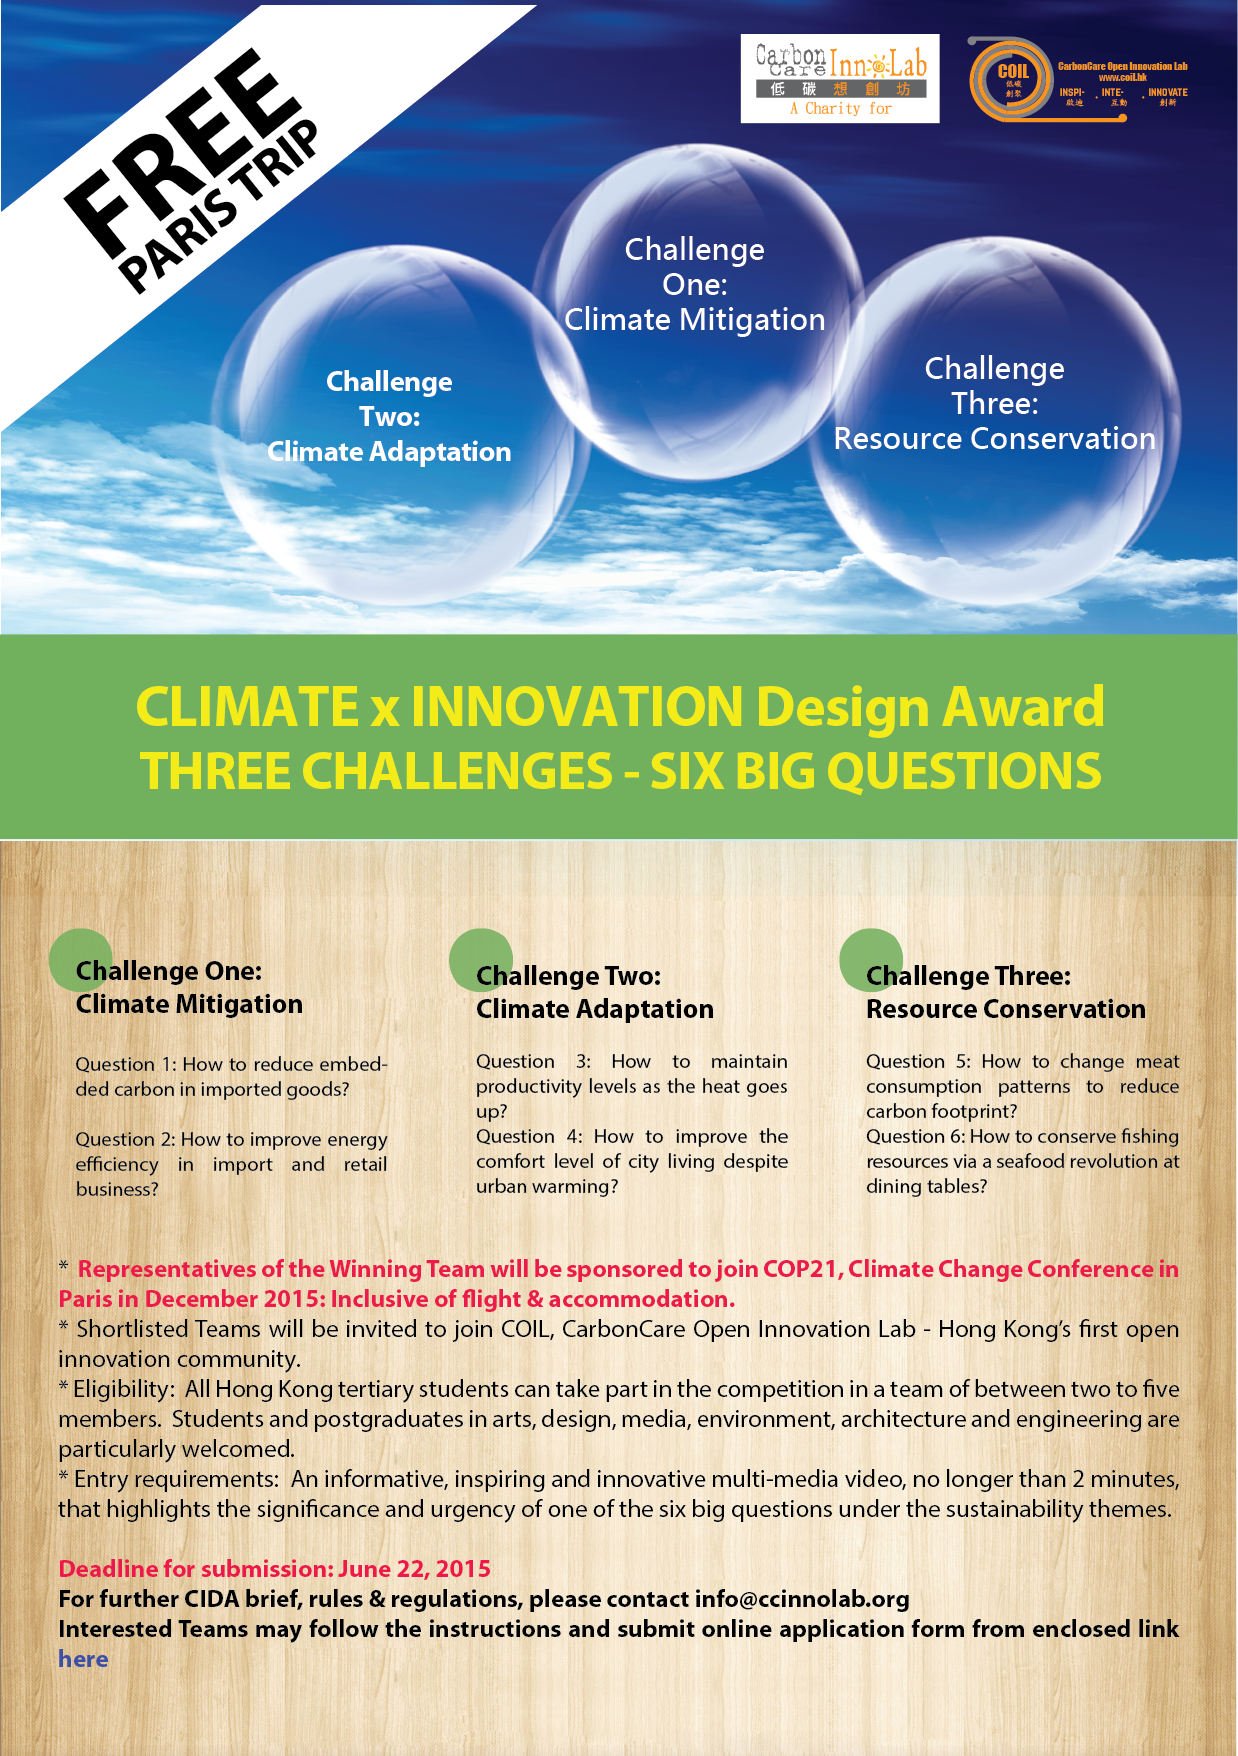 Poster design hong kong - China Green Building Forum 2015 Date 19 20 June 2015 Information Click Here Ge3203 Sustainable Development Of Hong Kong Poster Exhibition